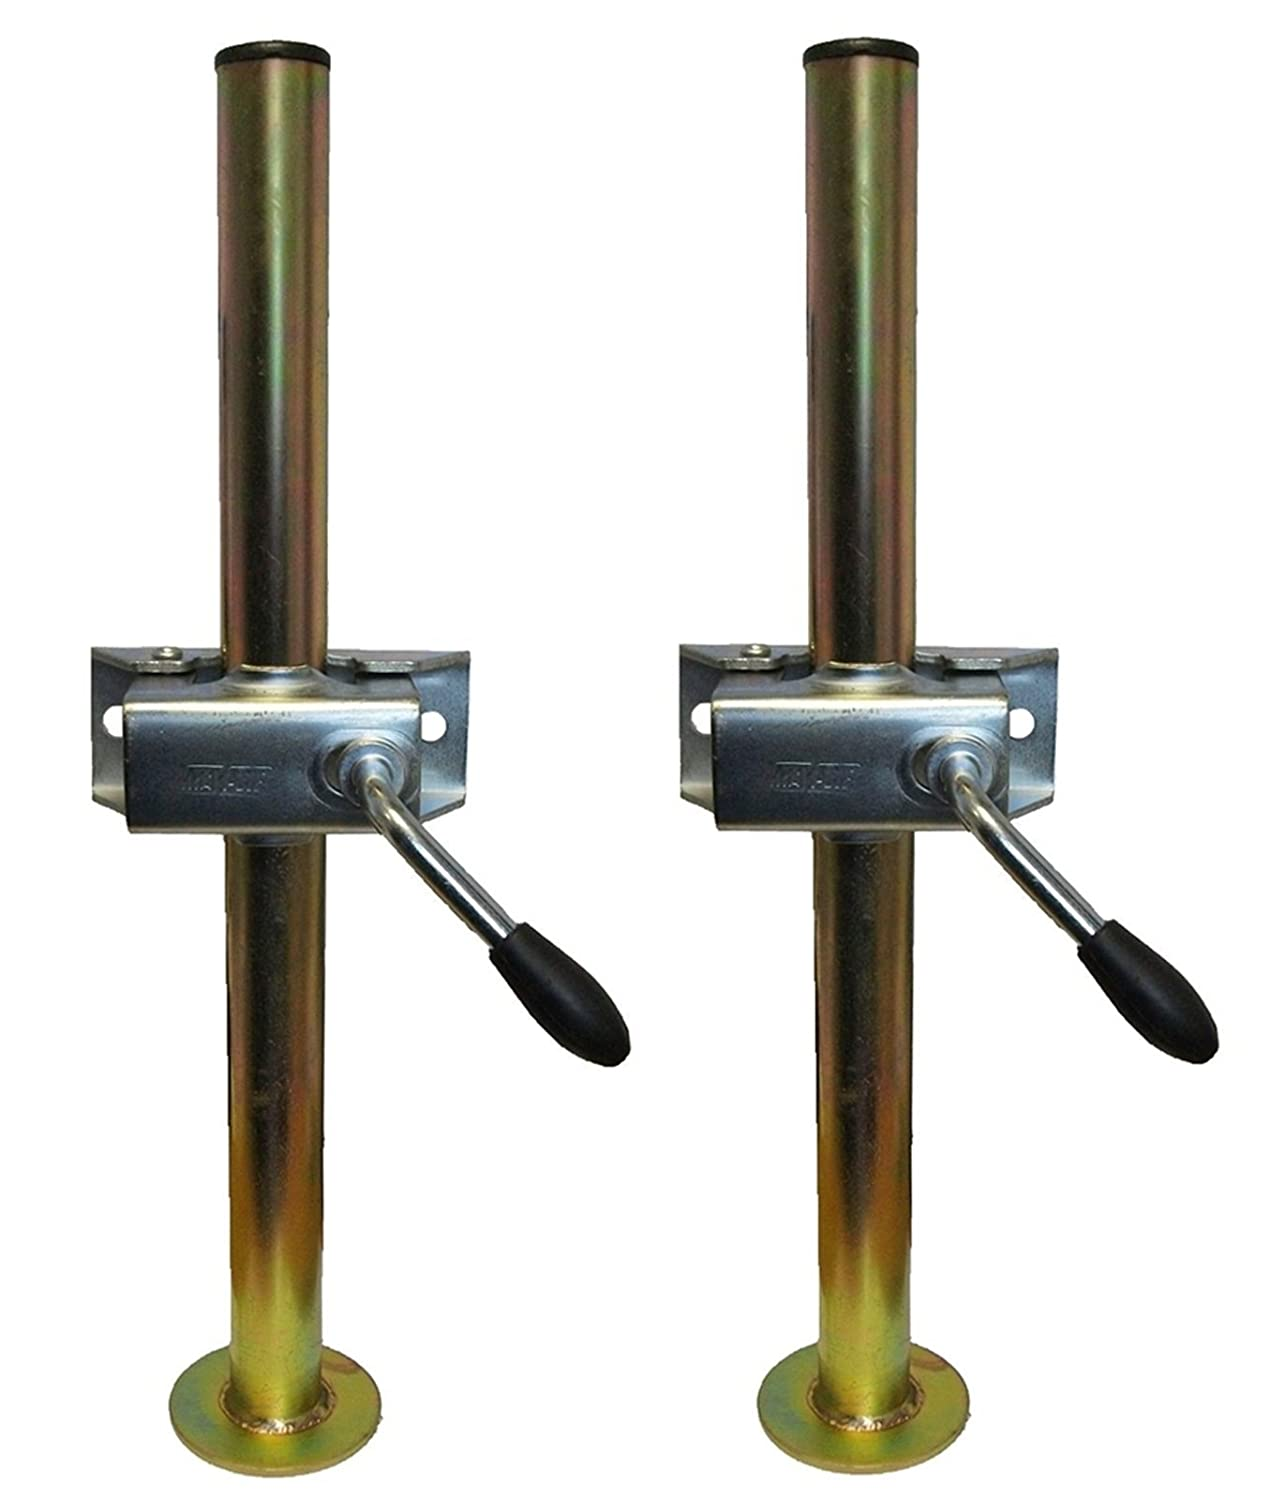 leisure MART A pair of trailer prop stands corner steadys 34mm diameter x 460mm length with split clamps Pt no. LMX1508